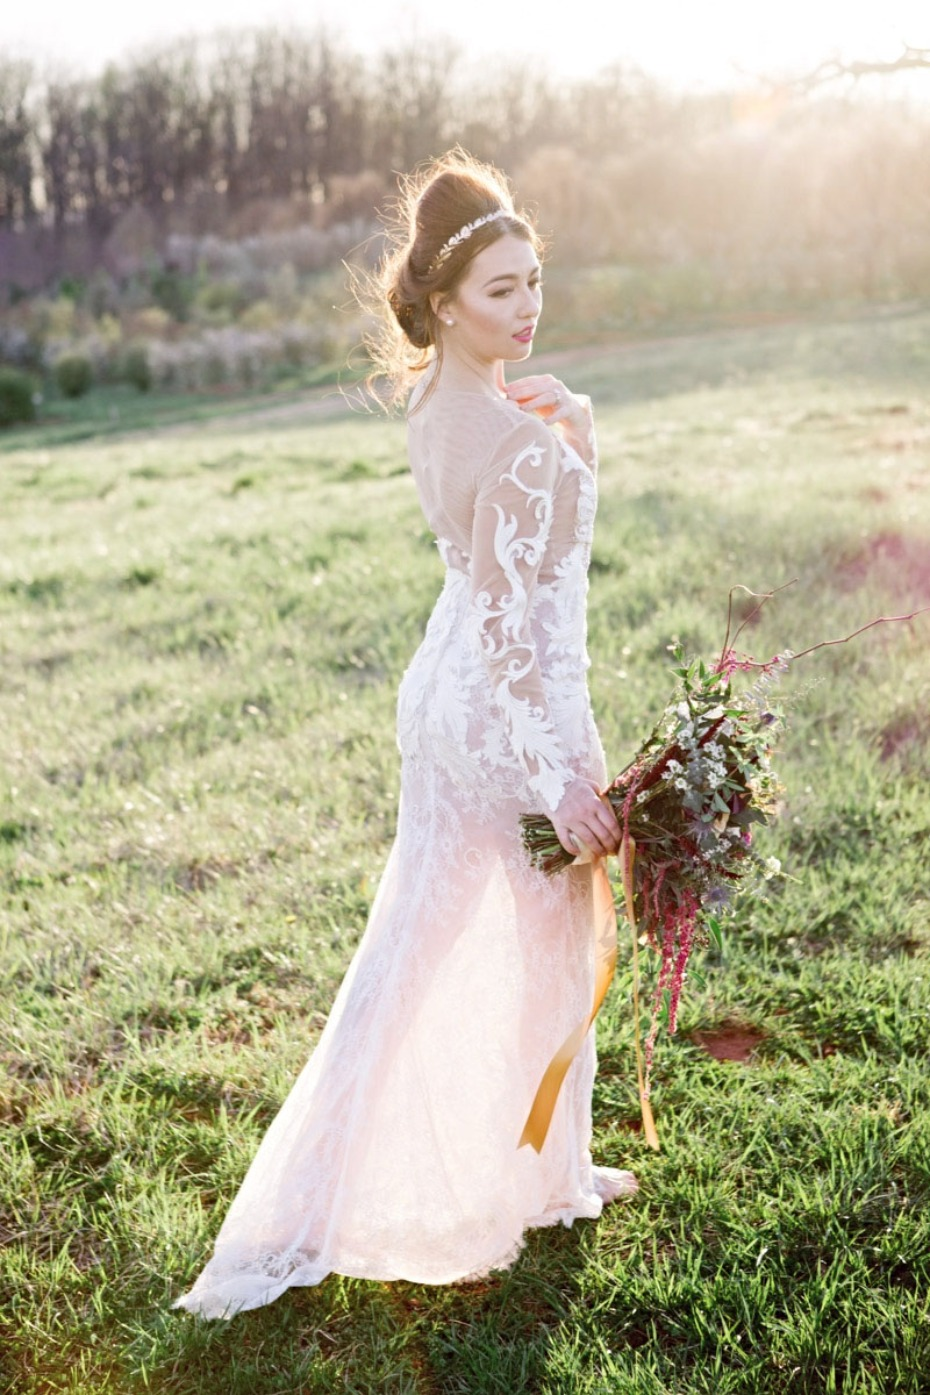 Hand stitched couture gown from Sheri Autry Couture